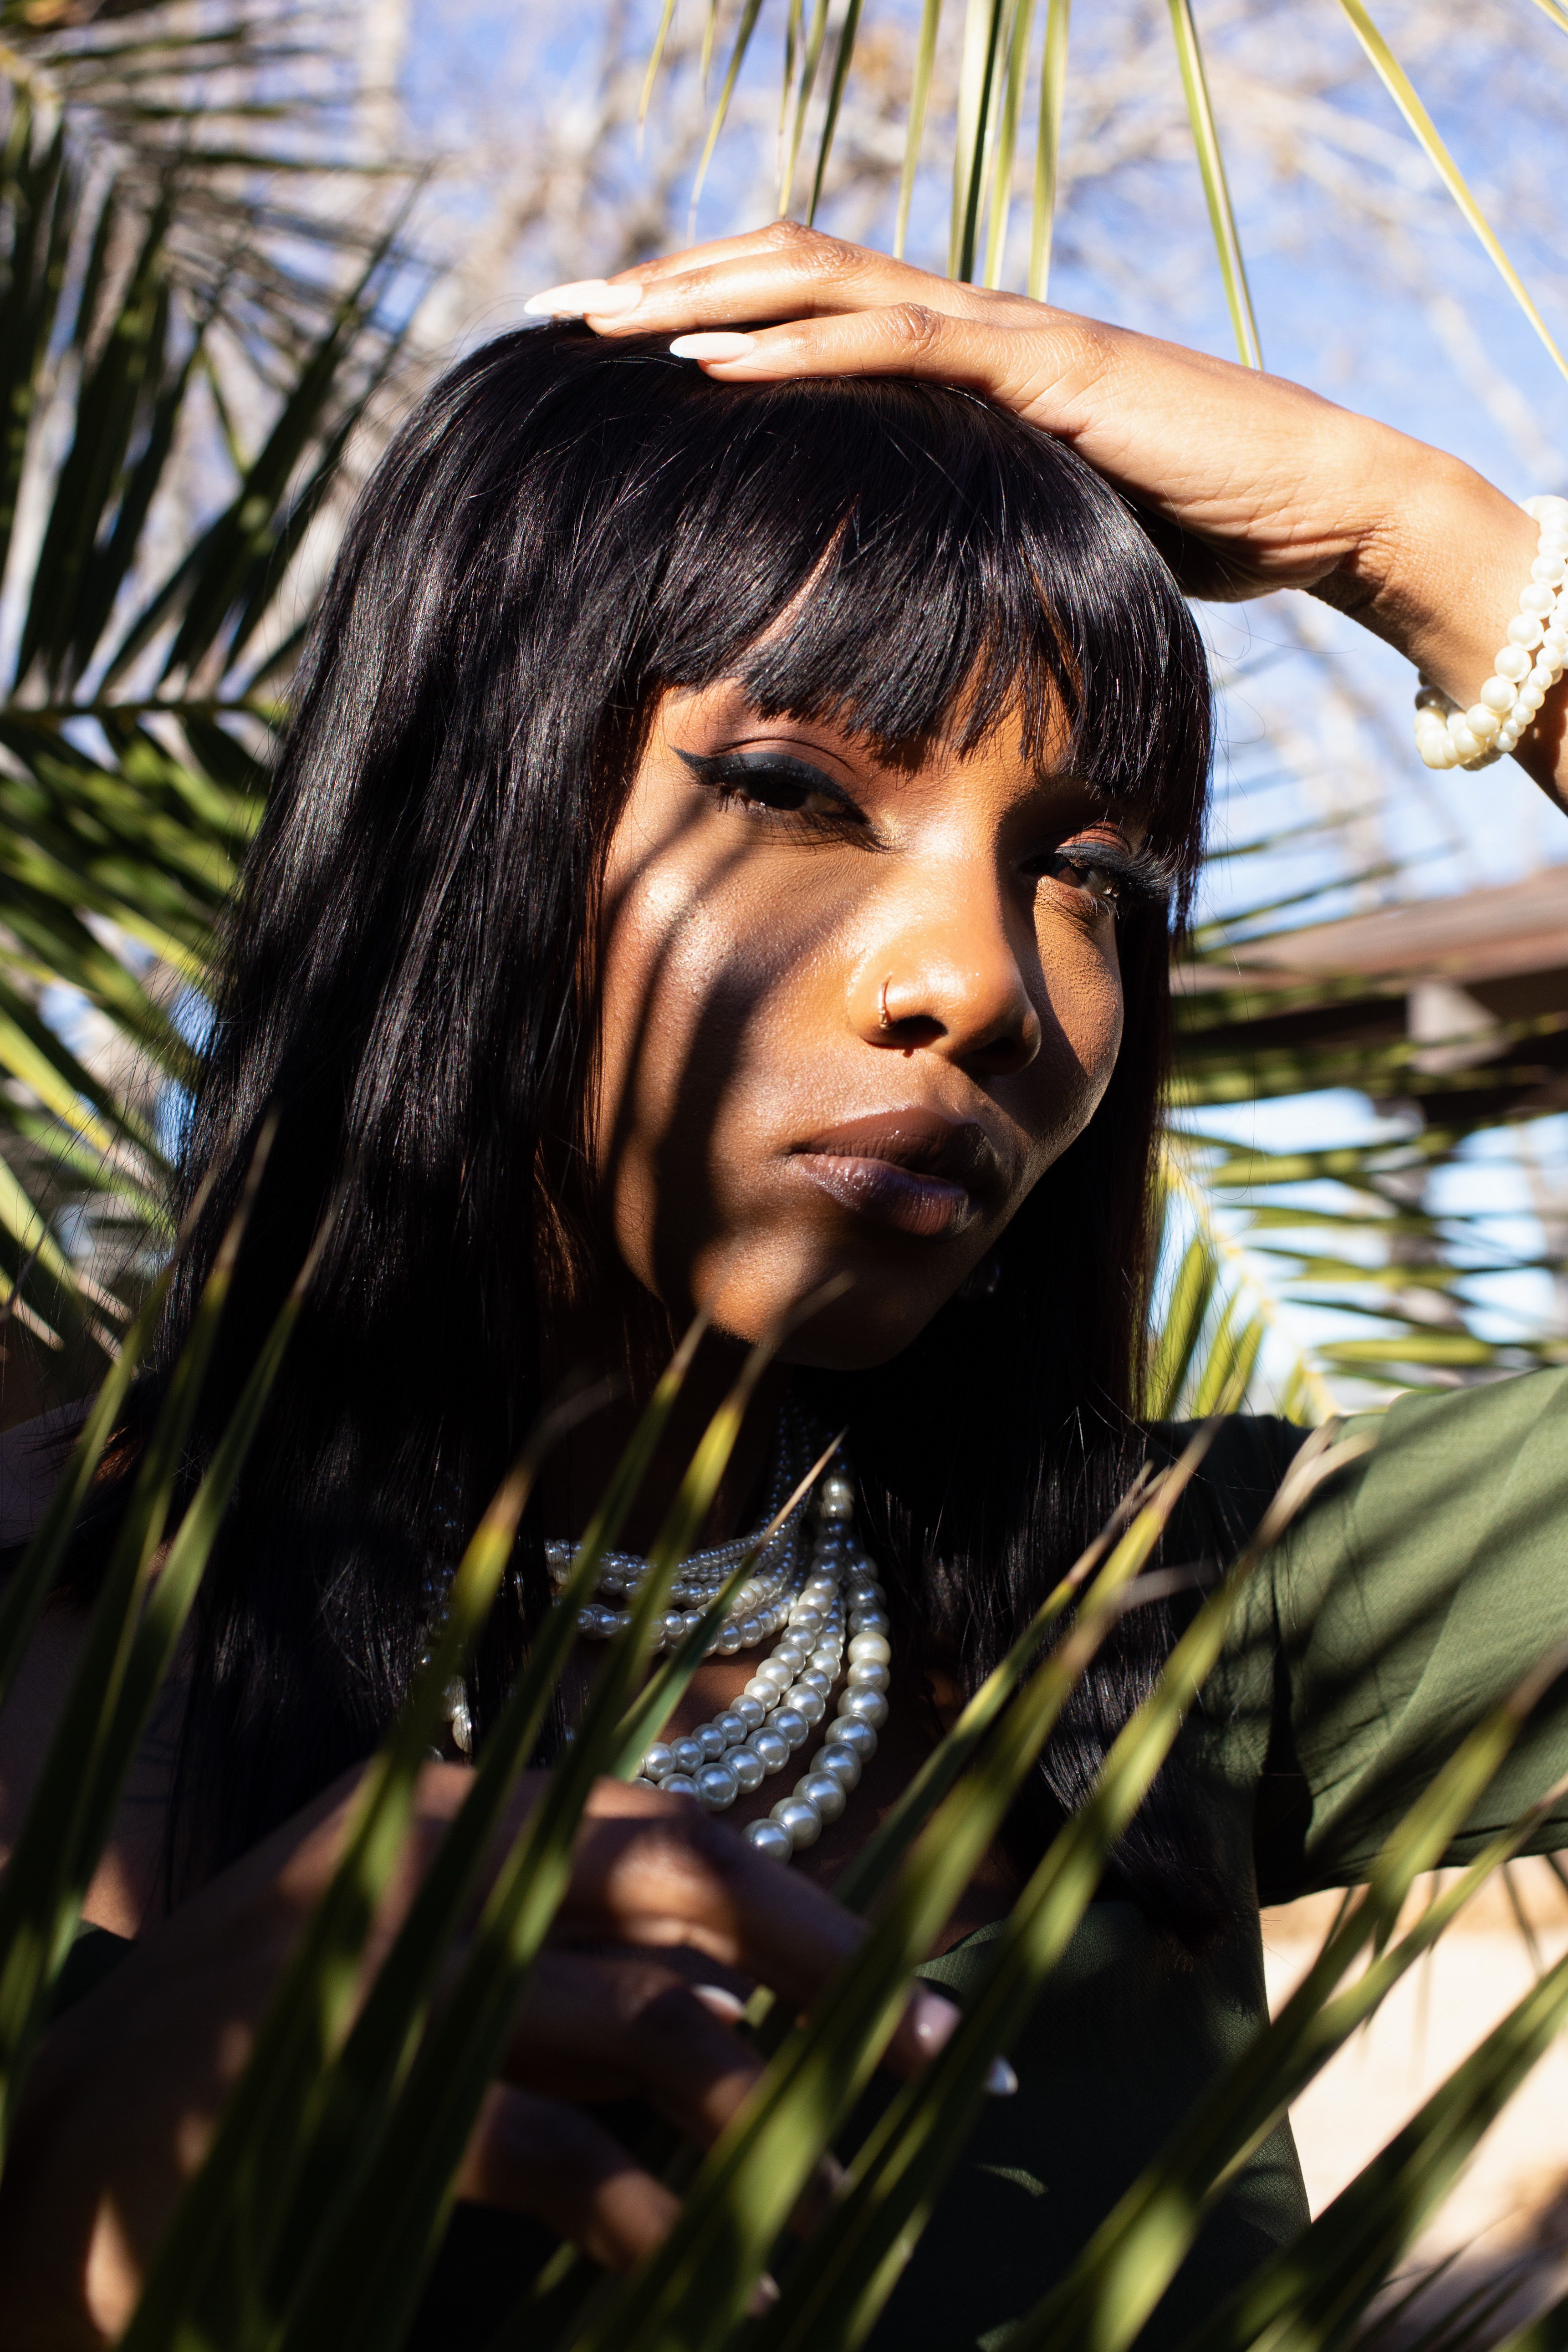 Sensational American Music Artist Shah Brielle Features J.Artiz in New Hit Single Titled 'Come Home'